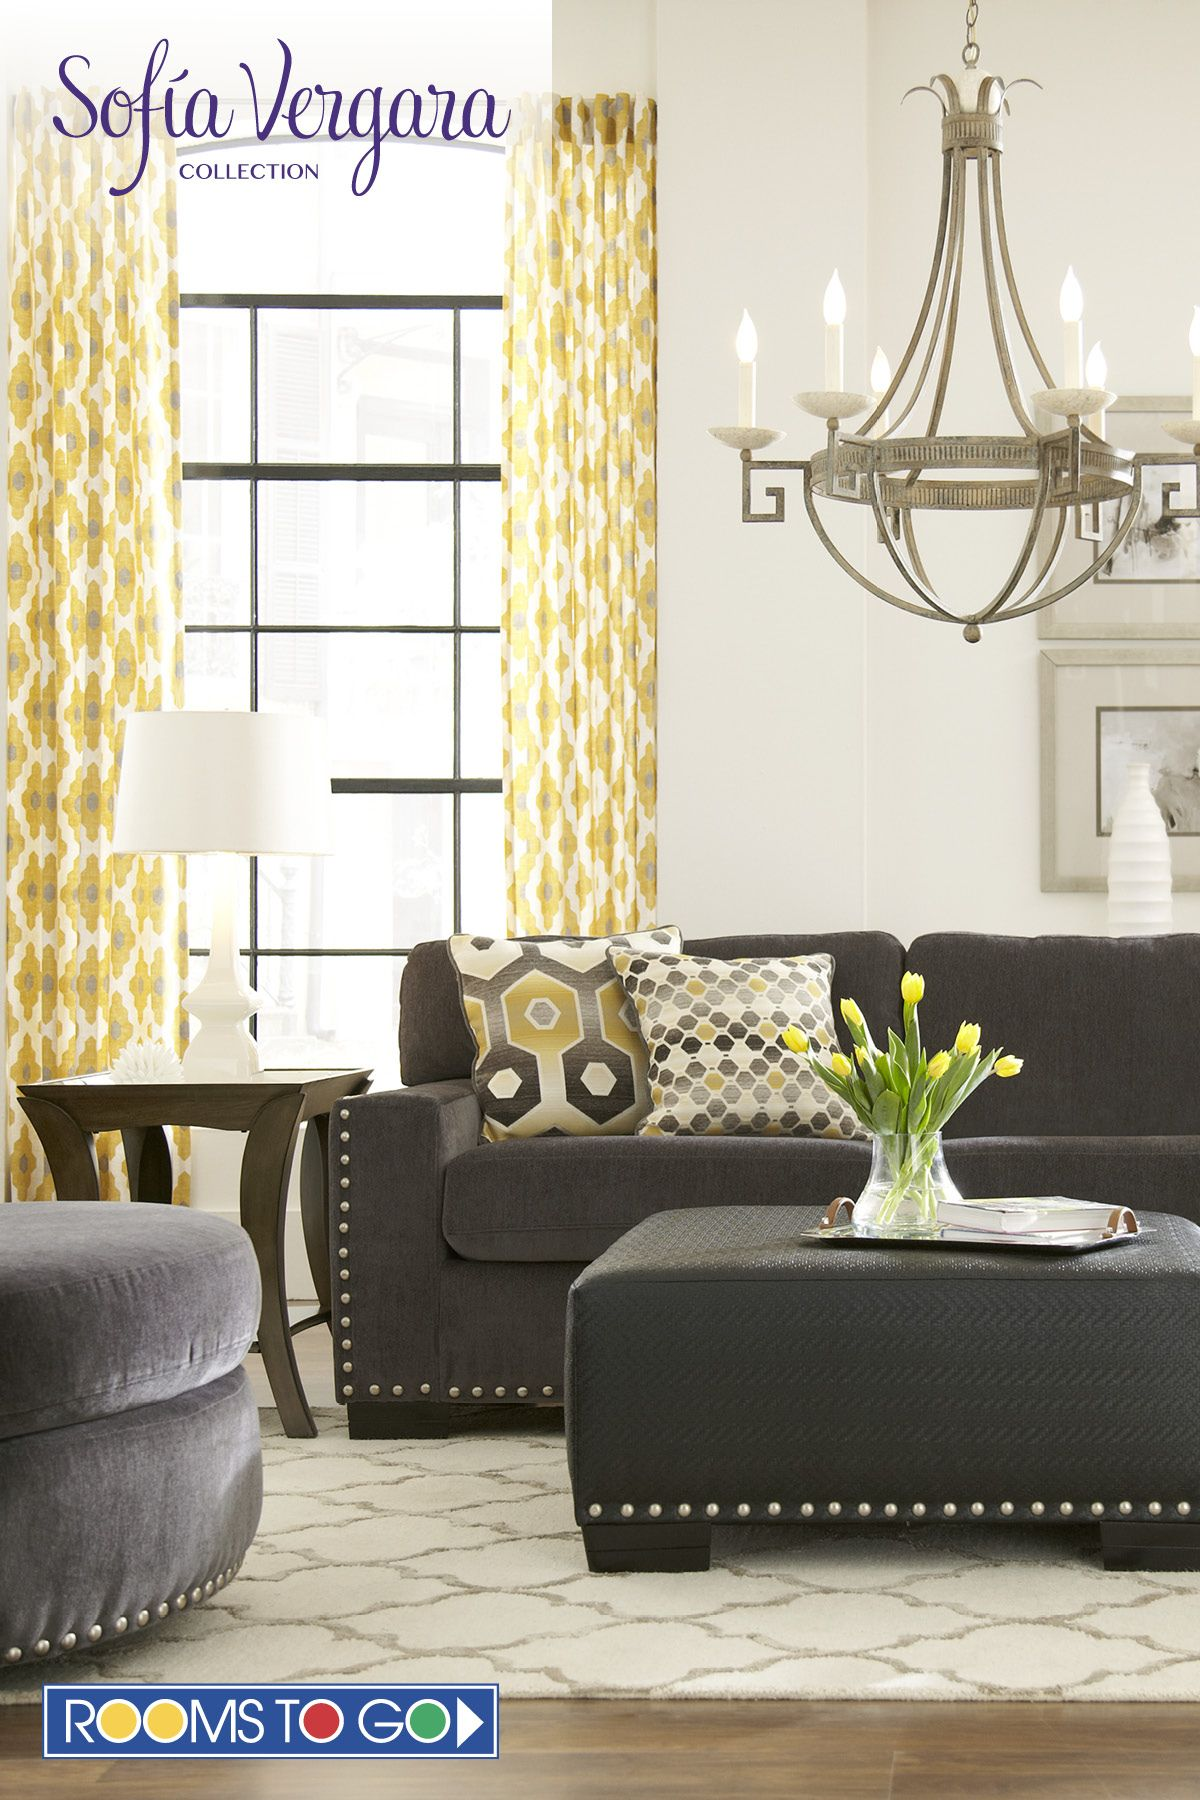 Lounge and luxuriate in the effortlessly chic style of the Sofia ...